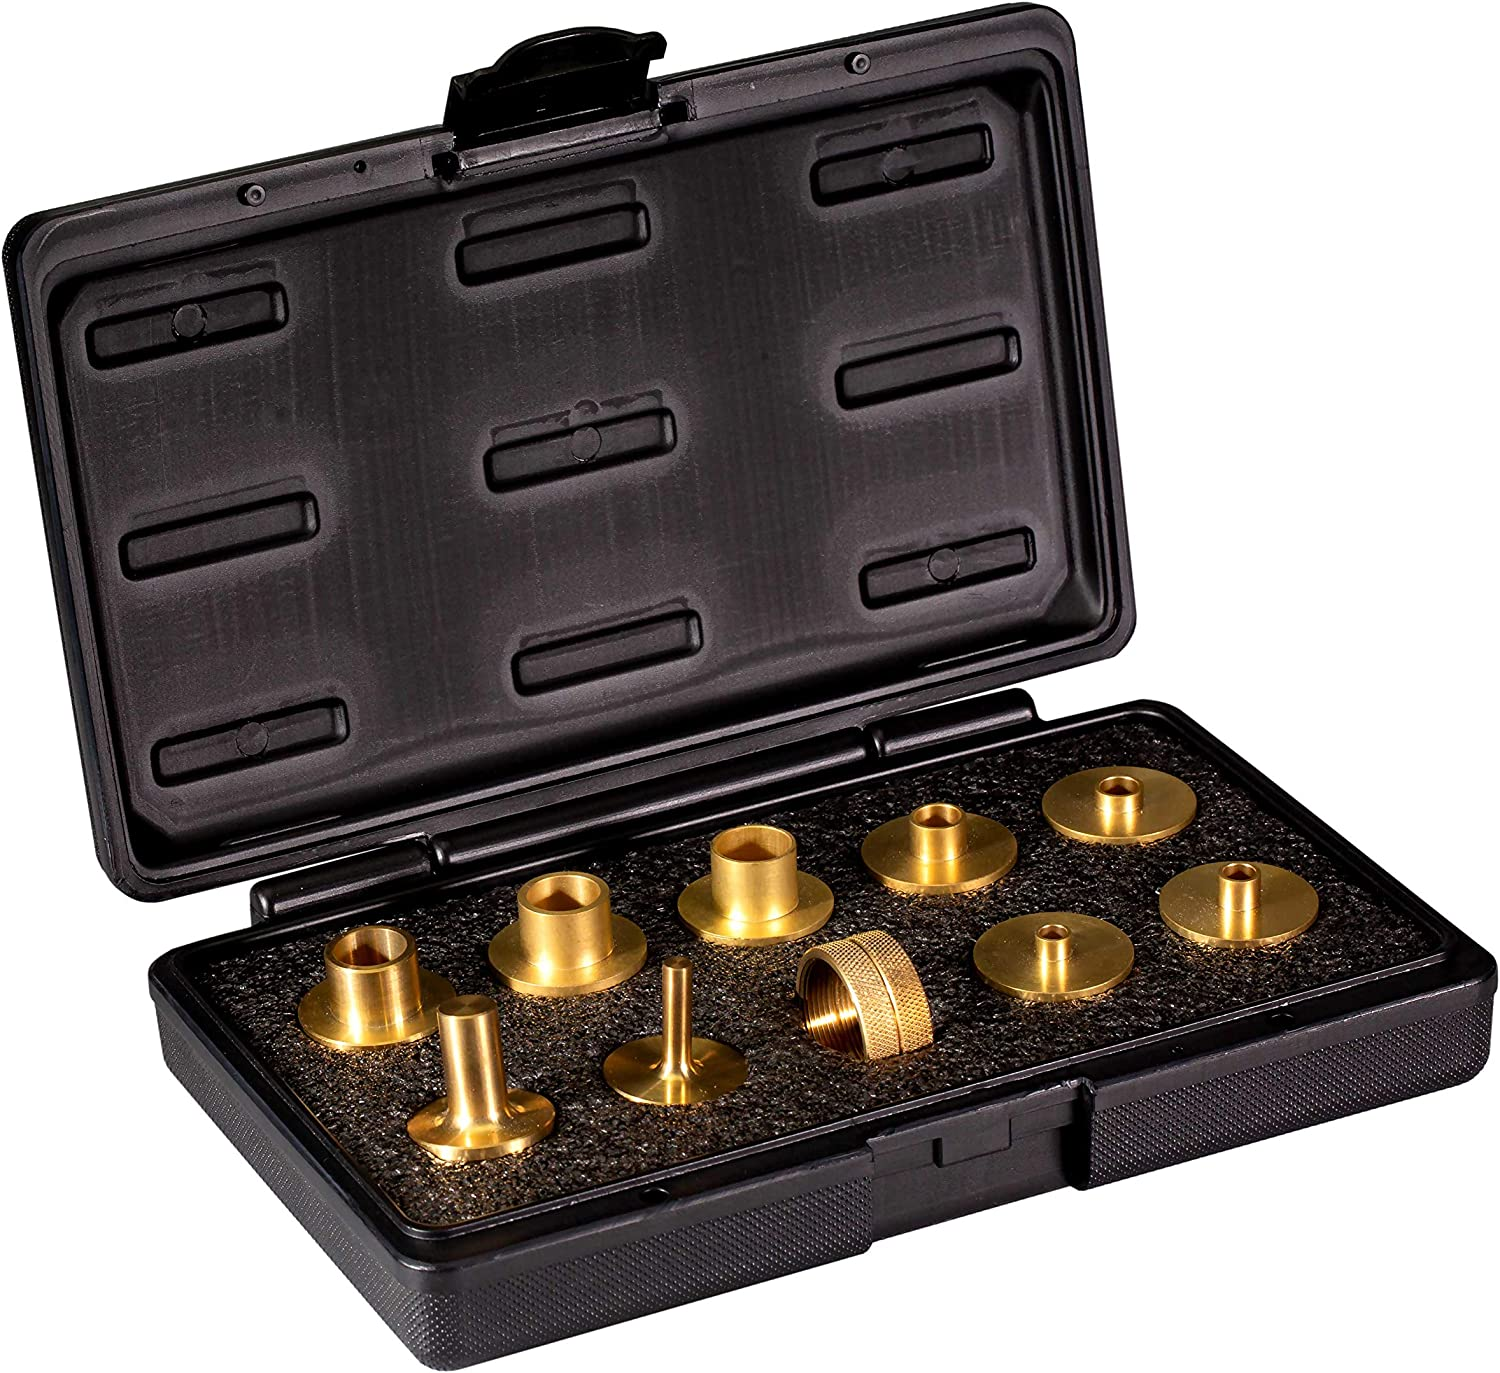 POWERTEC 71221 11-Piece Brass Router Guide Bushing Set   Pro Style Router Template Kit with Shank Bit Set and Lock Nuts